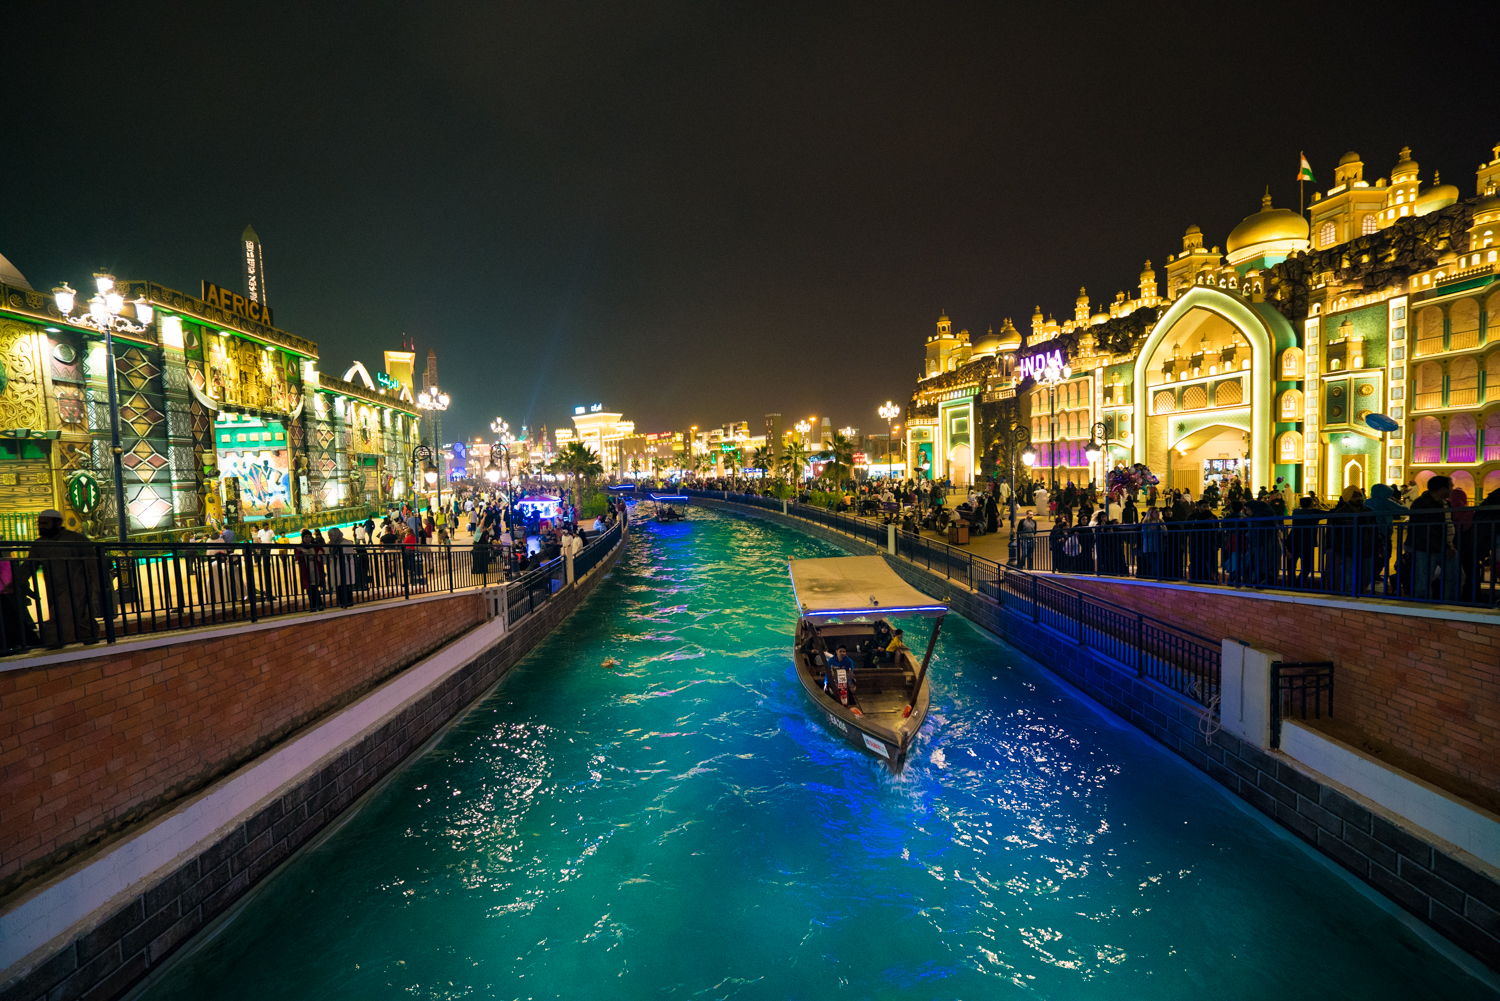 Such a small portion of Global Village.  Sony A7RII, Sony 16-35mm f/4 (iso4000, f/4, 1/50s)